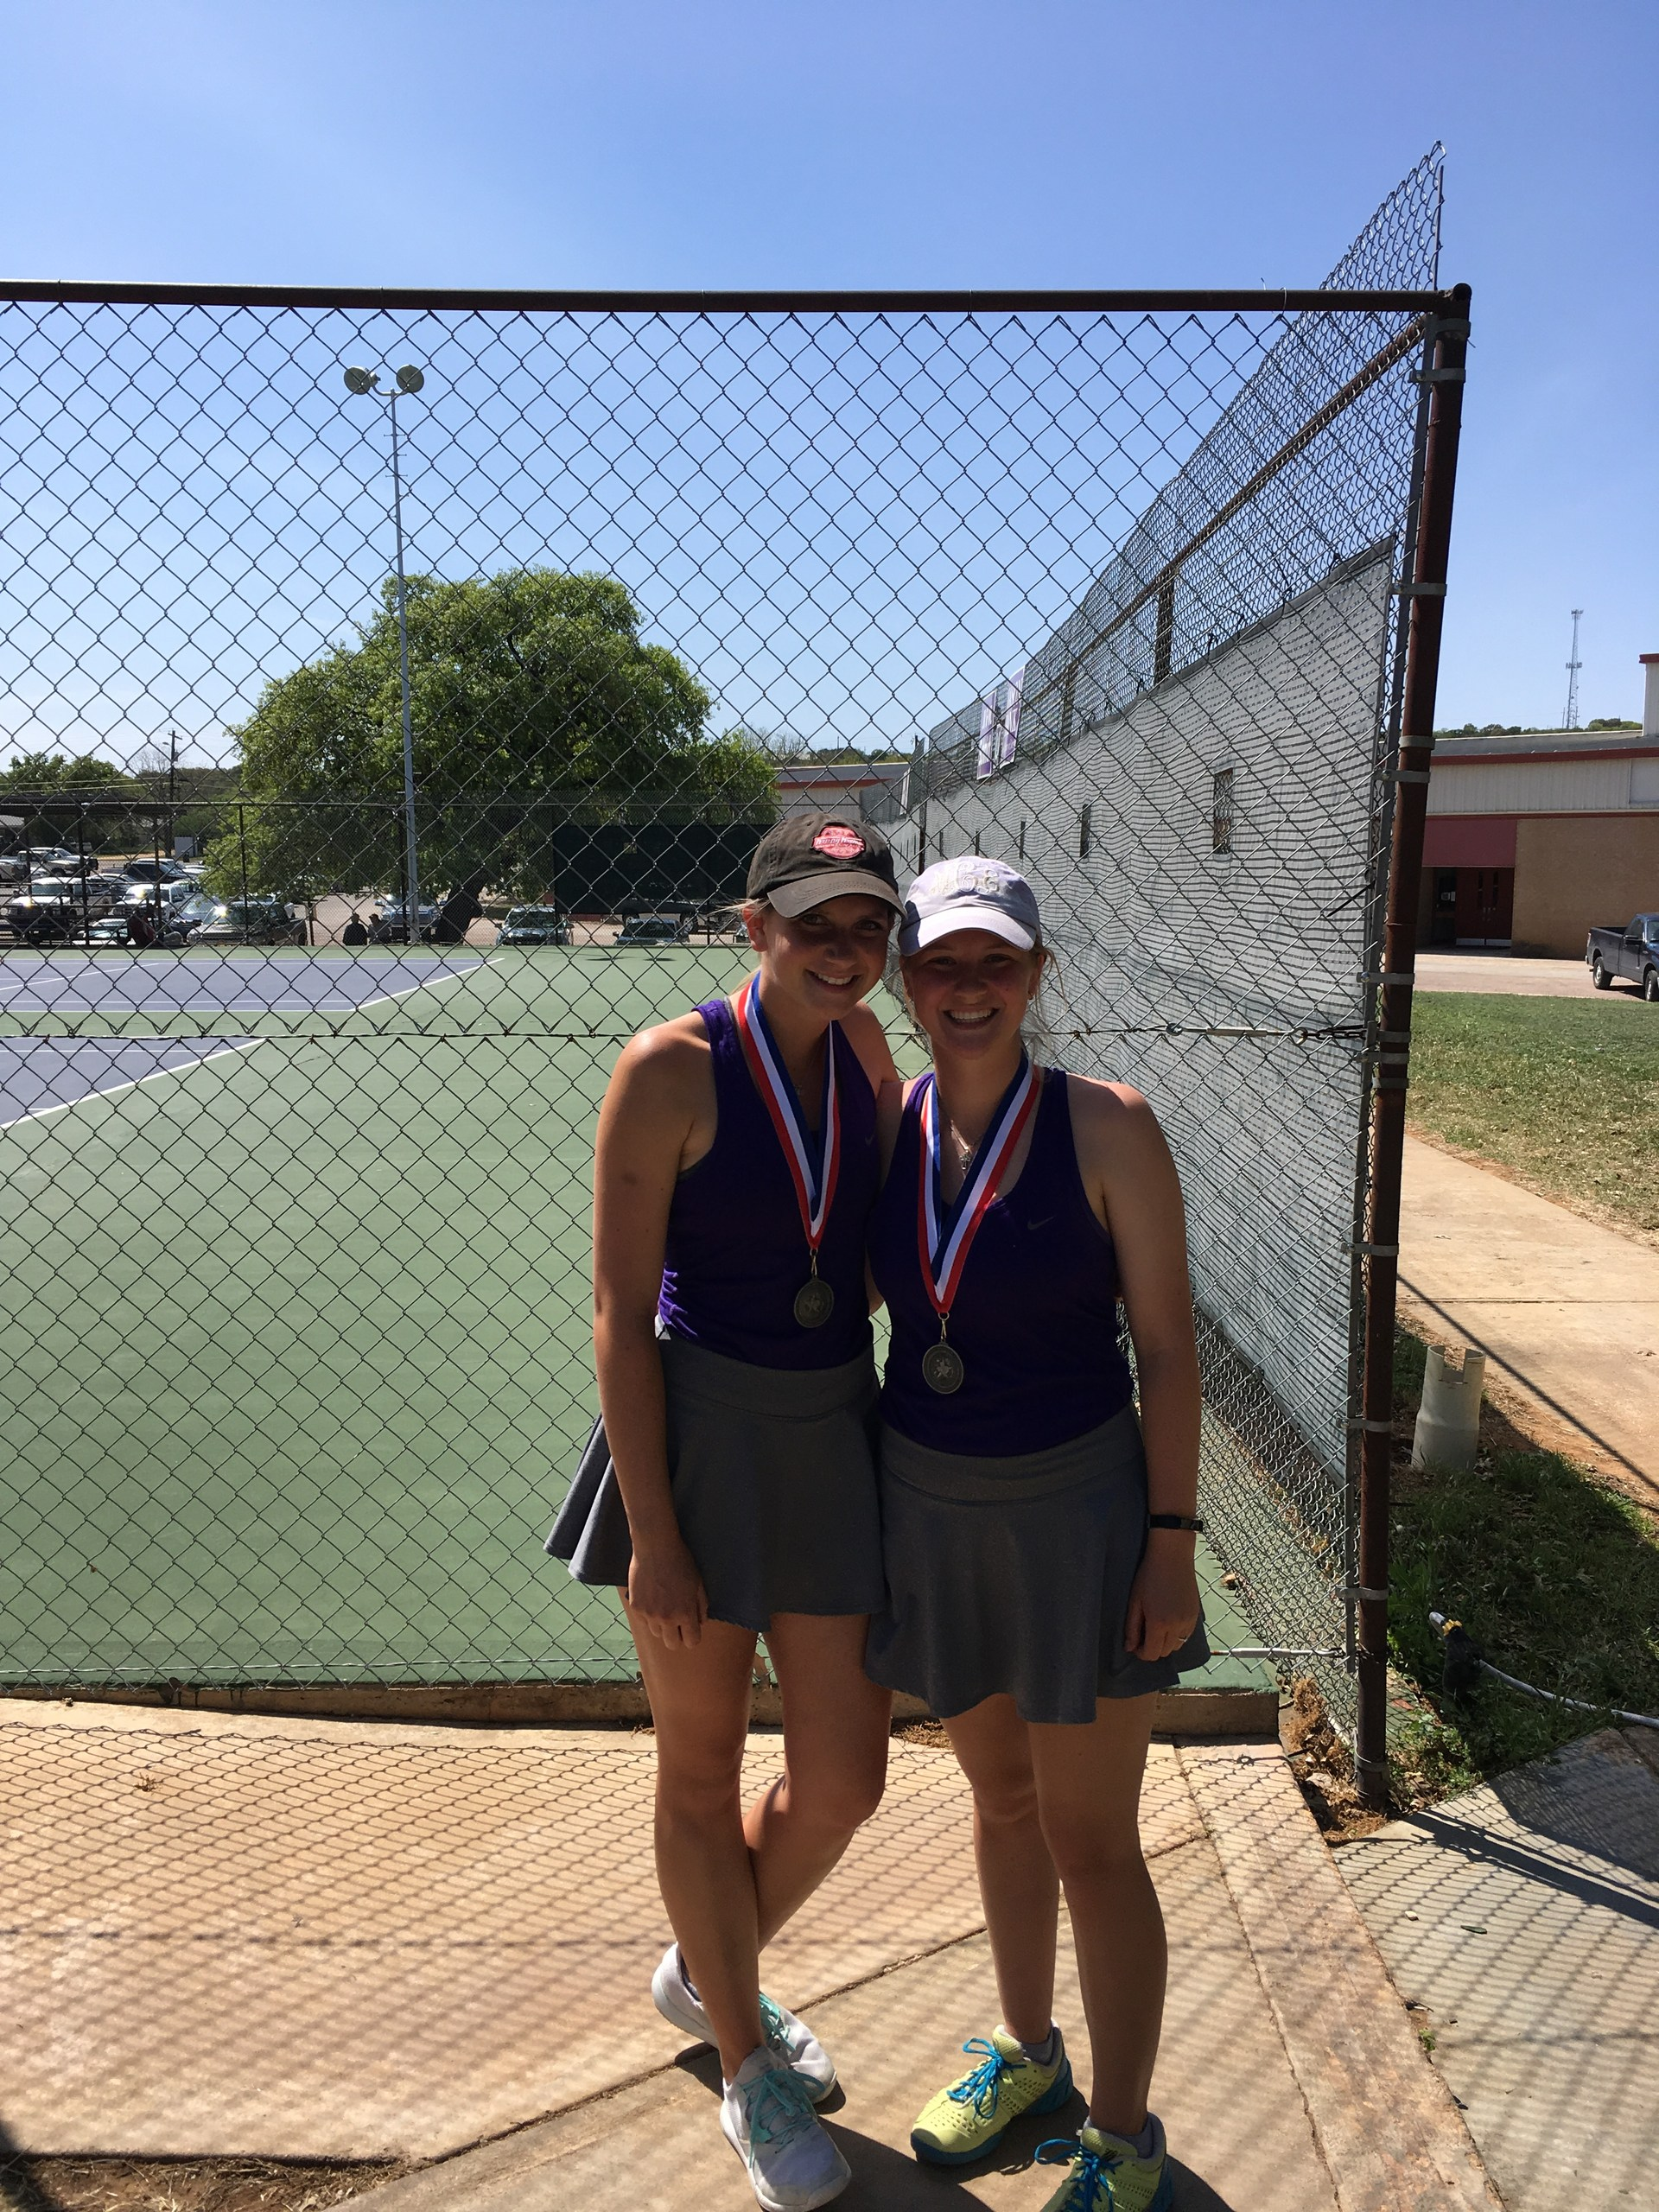 Molly Schwertner & Megan Canfield - Varsity Girls Doubles 2nd place